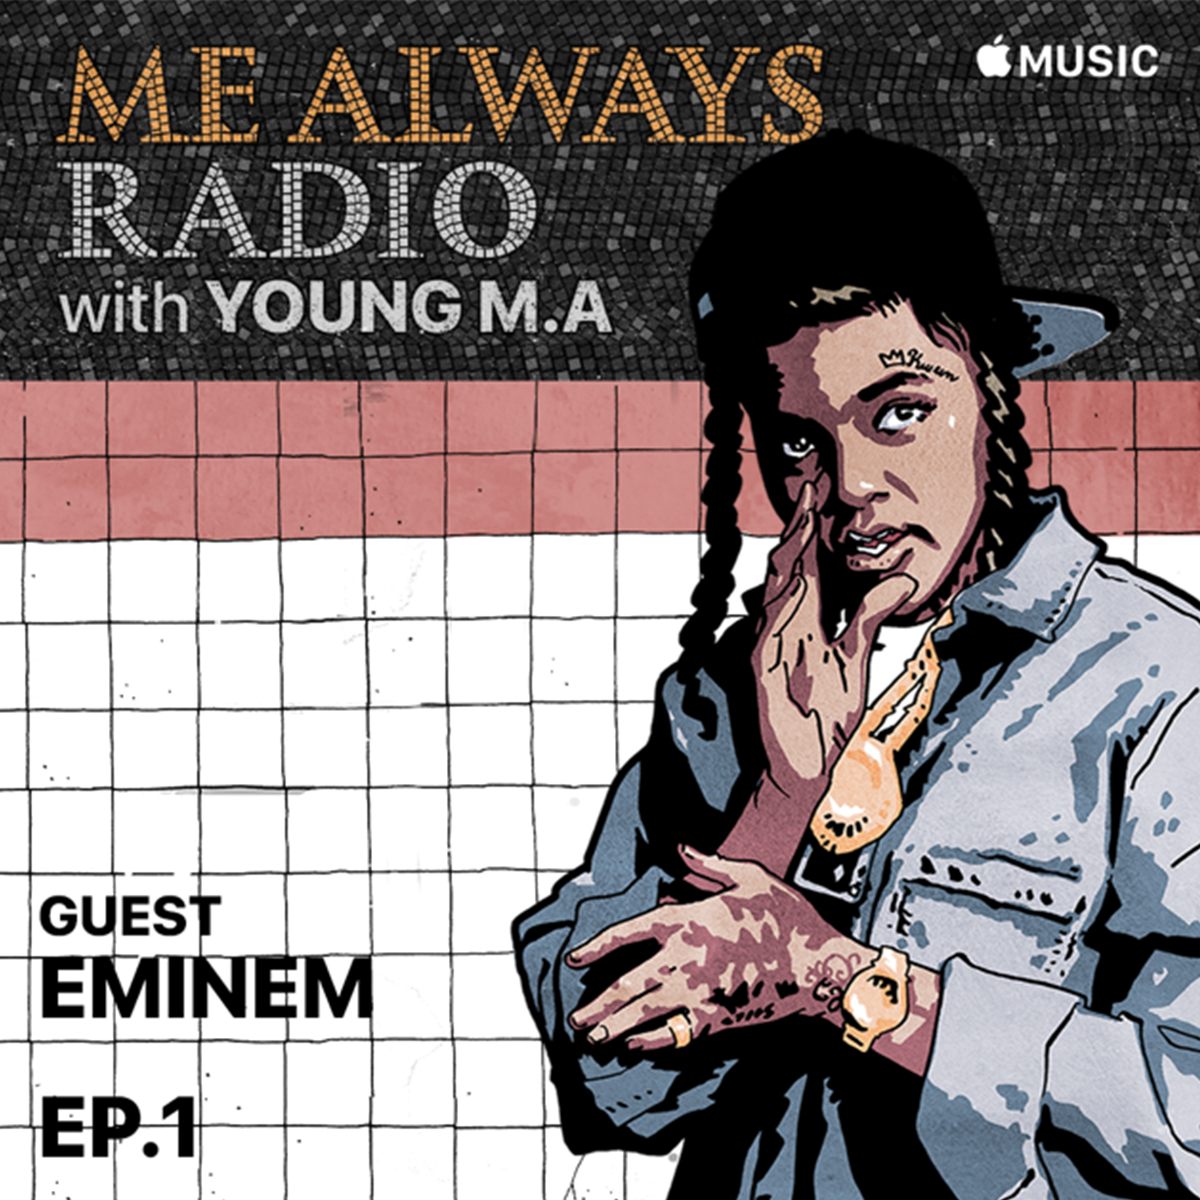 Honored to be @YoungMAMusic's first guest on her new radio show- check it out! @applemusic